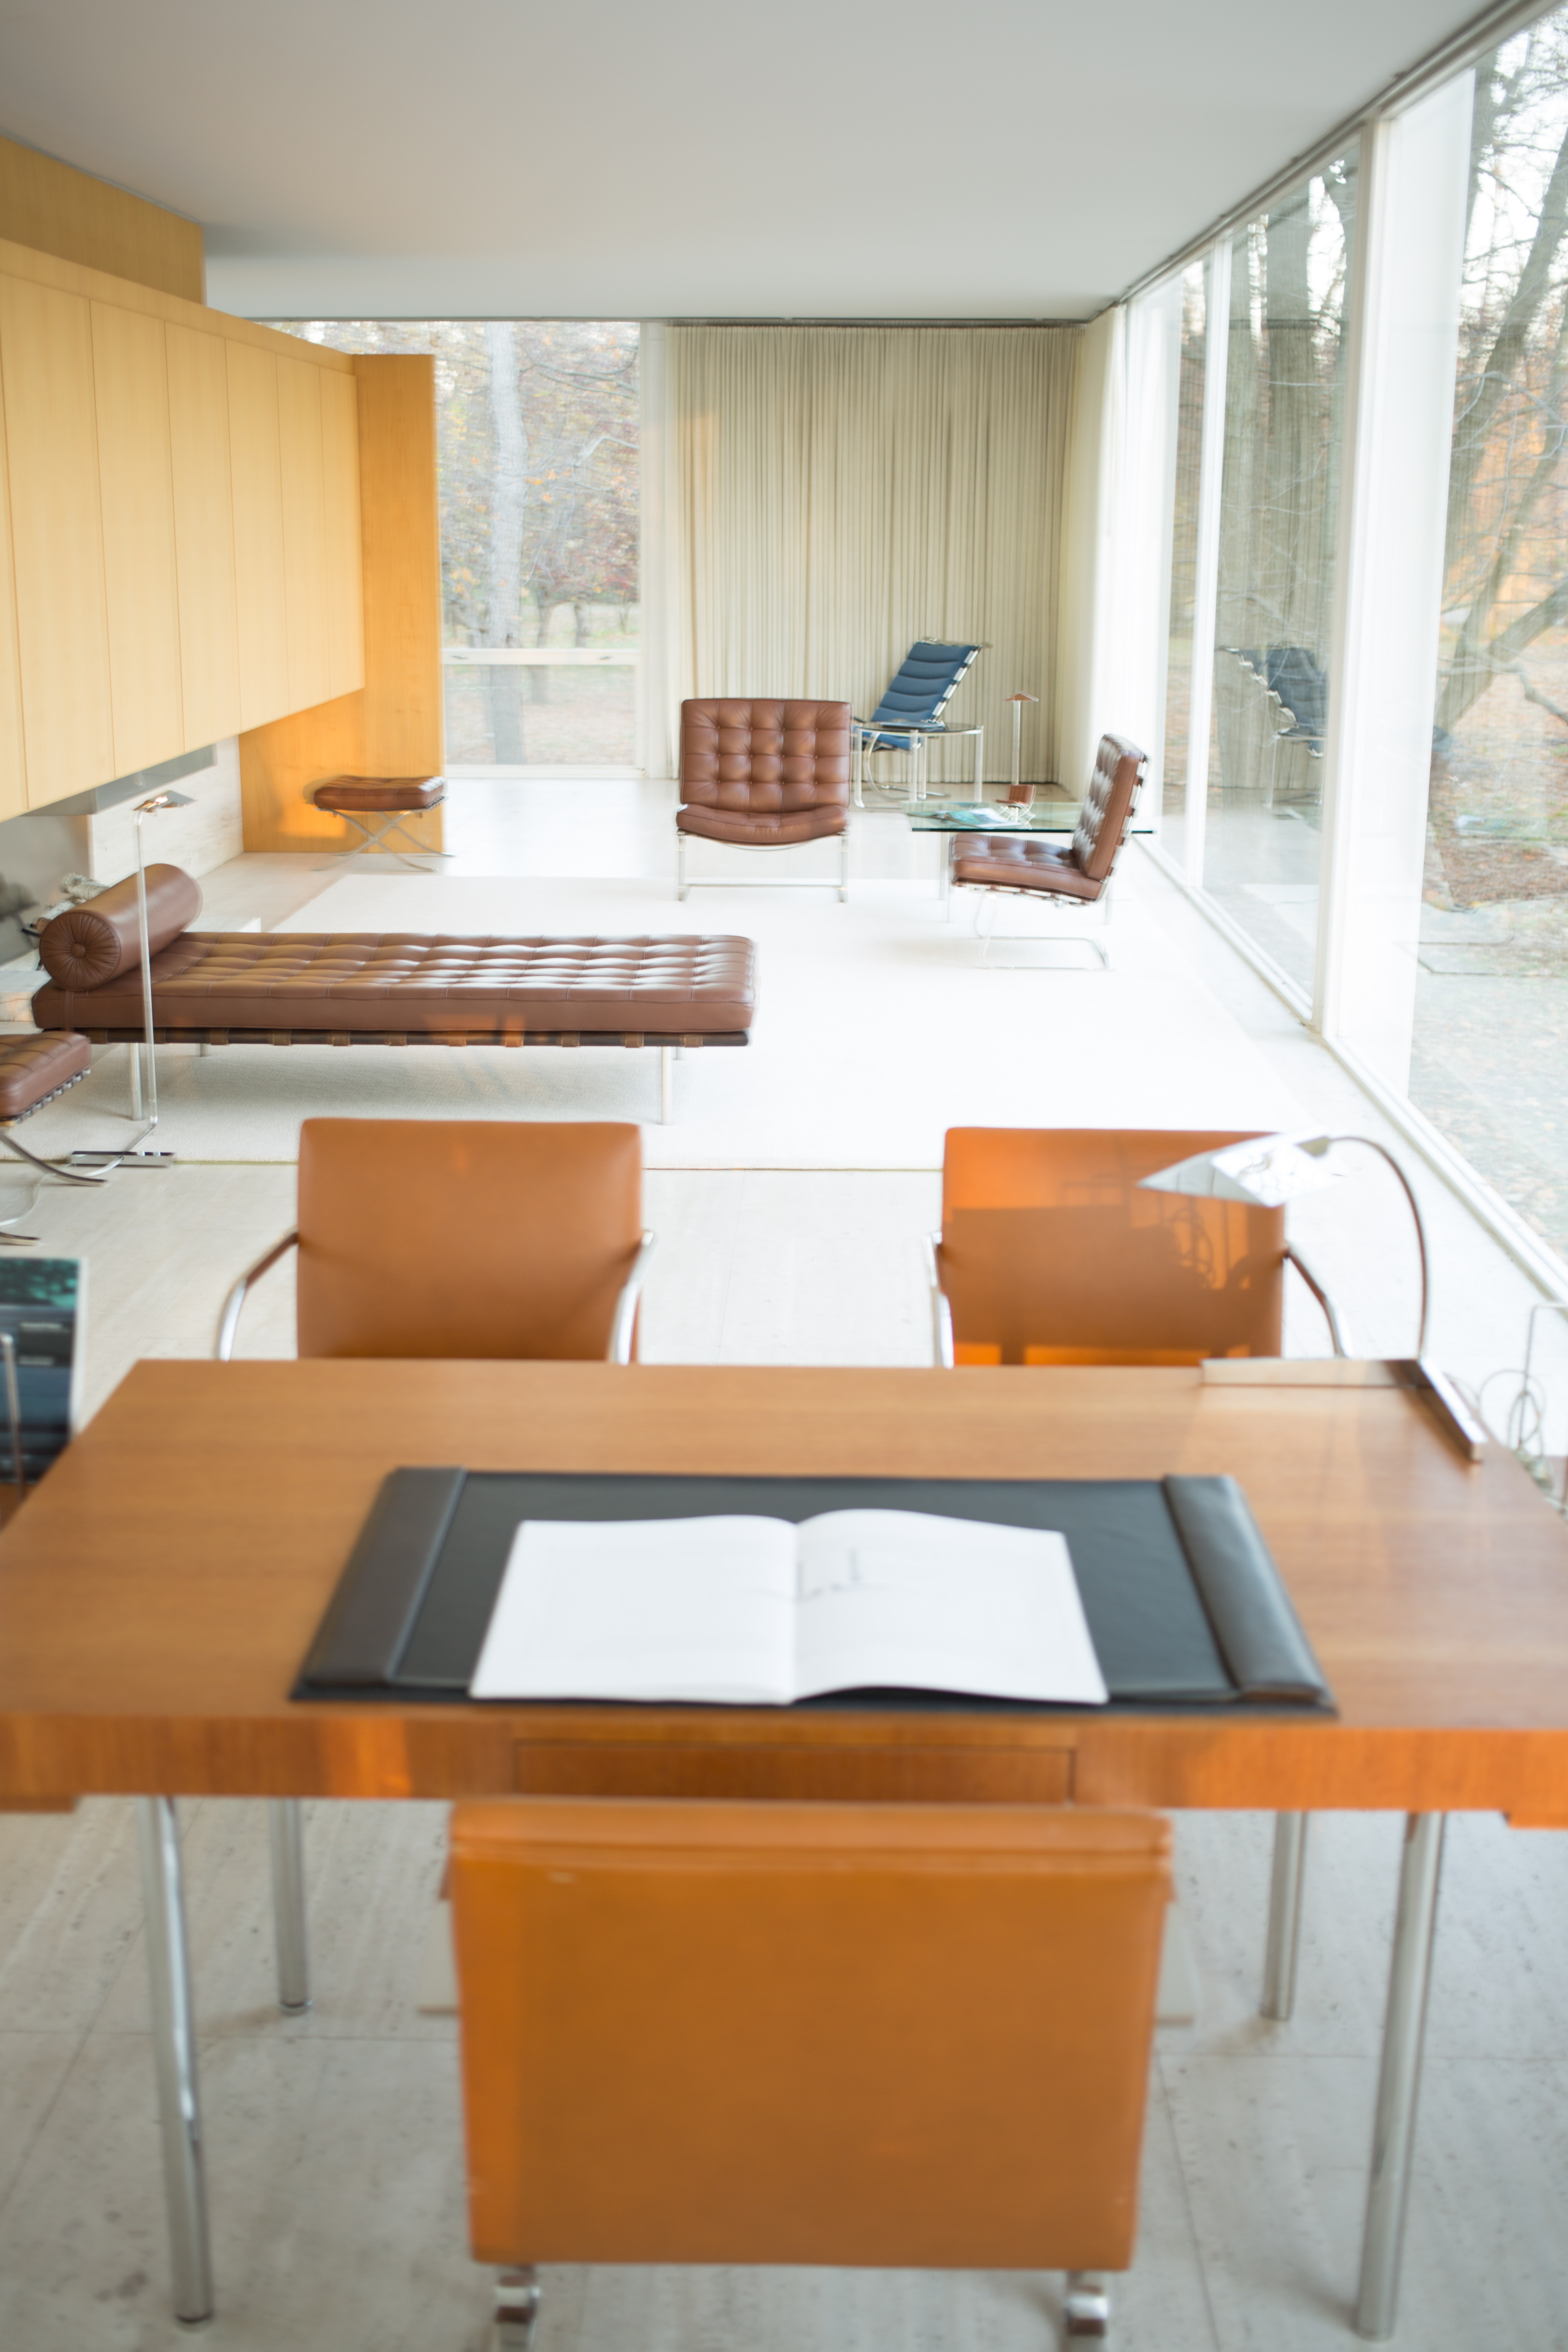 File:Farnsworth House by Mies Van Der Rohe - interior-3.jpg ...